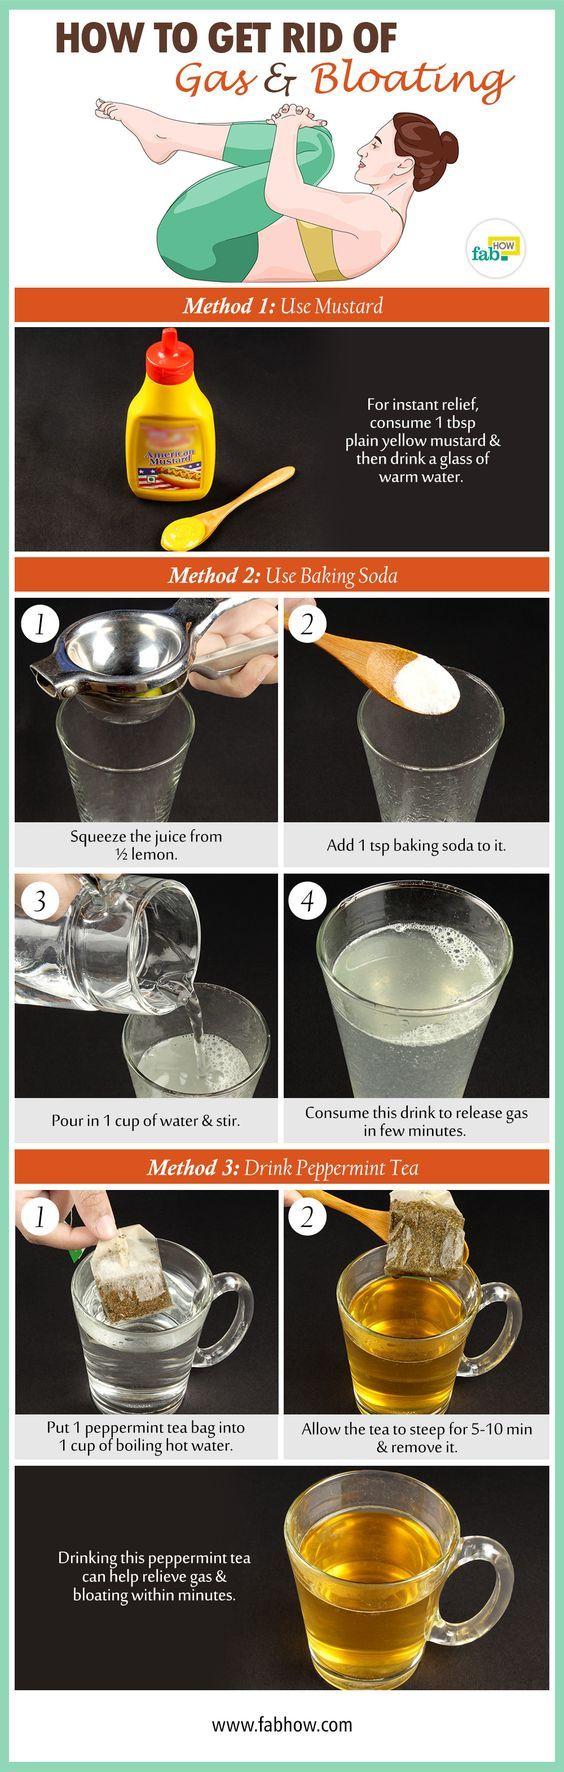 get rid of gas and bloating